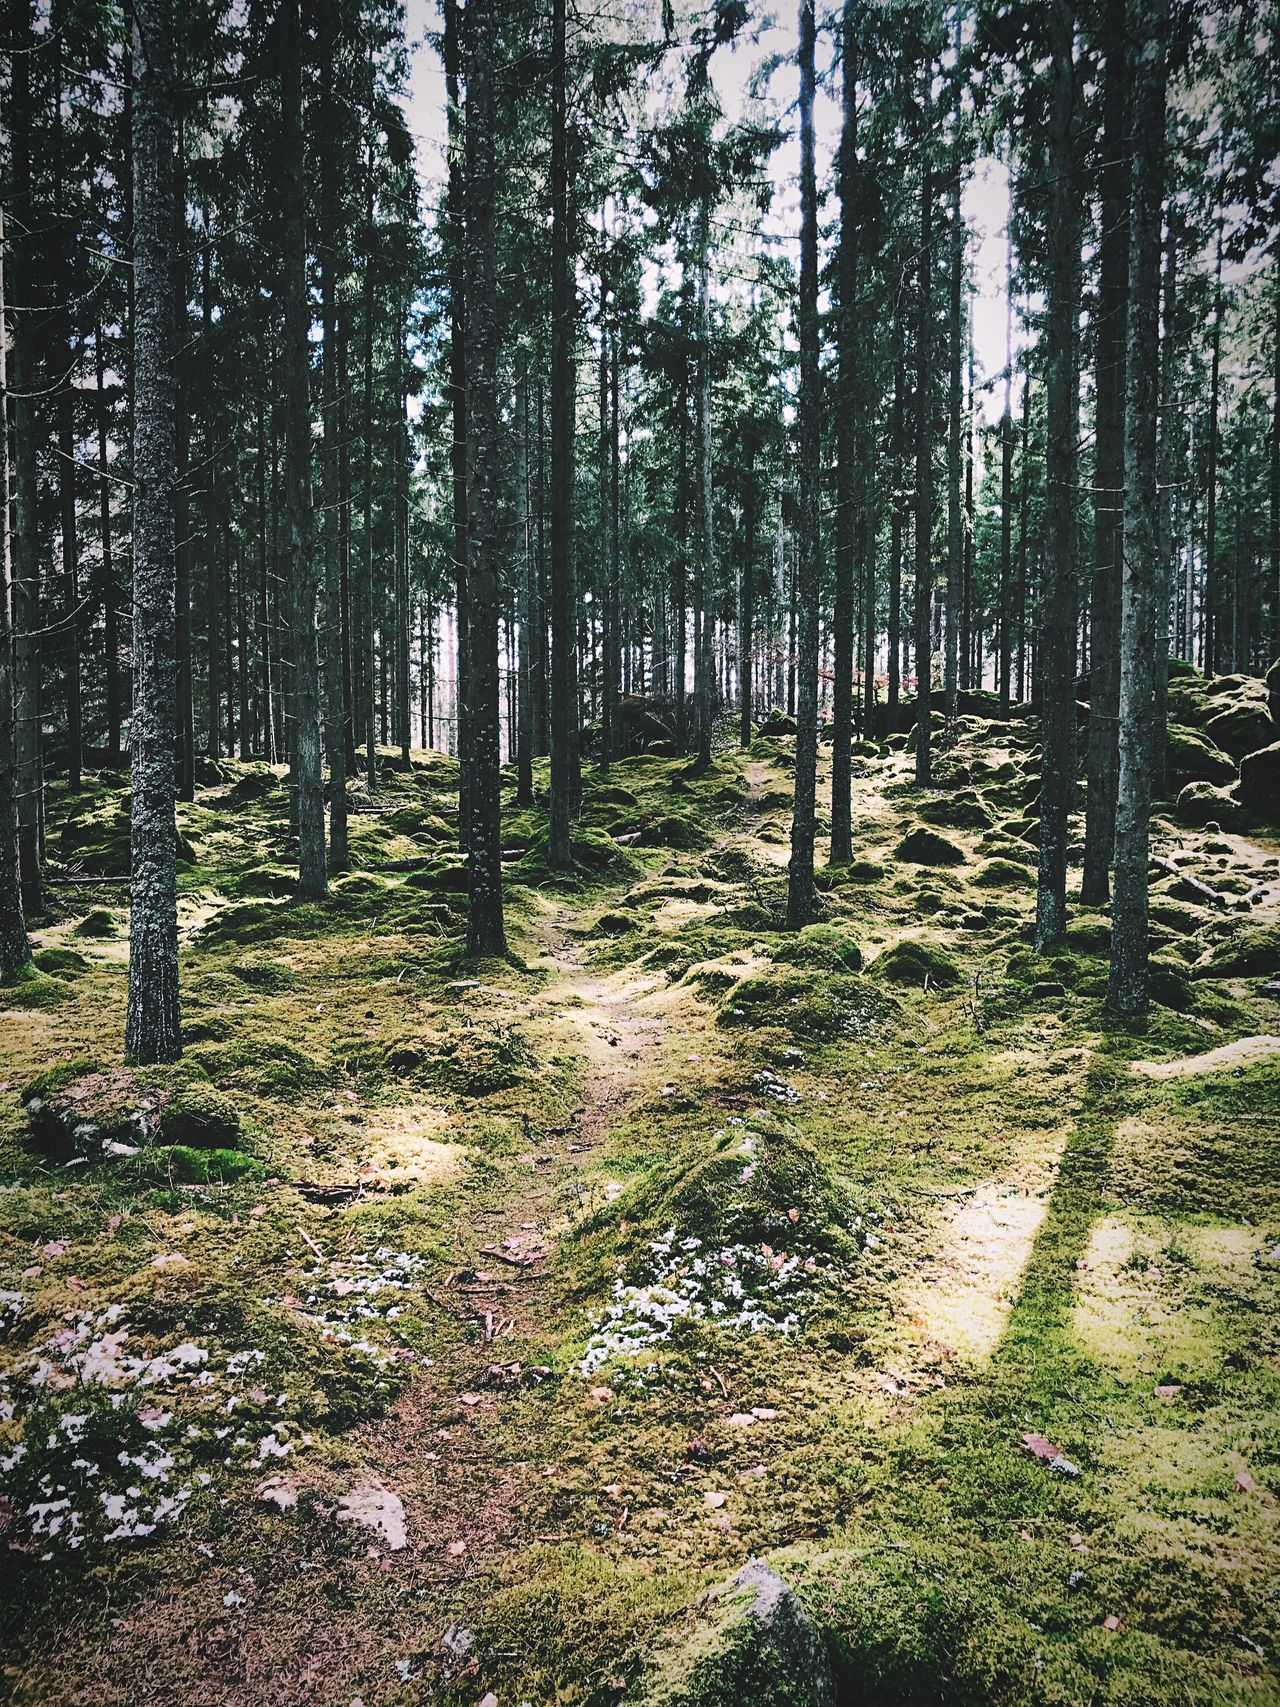 Path that leads into the deep forest. Forest Tree Trunk Nature Tree Tranquility Scenics Pinaceae Outdoors Tranquil Scene Beauty In Nature Landscape Day Pine Tree WoodLand No People Grass Growth Lush - Description Sky Tree Area Nature Photography Beauty In Nature Nature Trees Tree